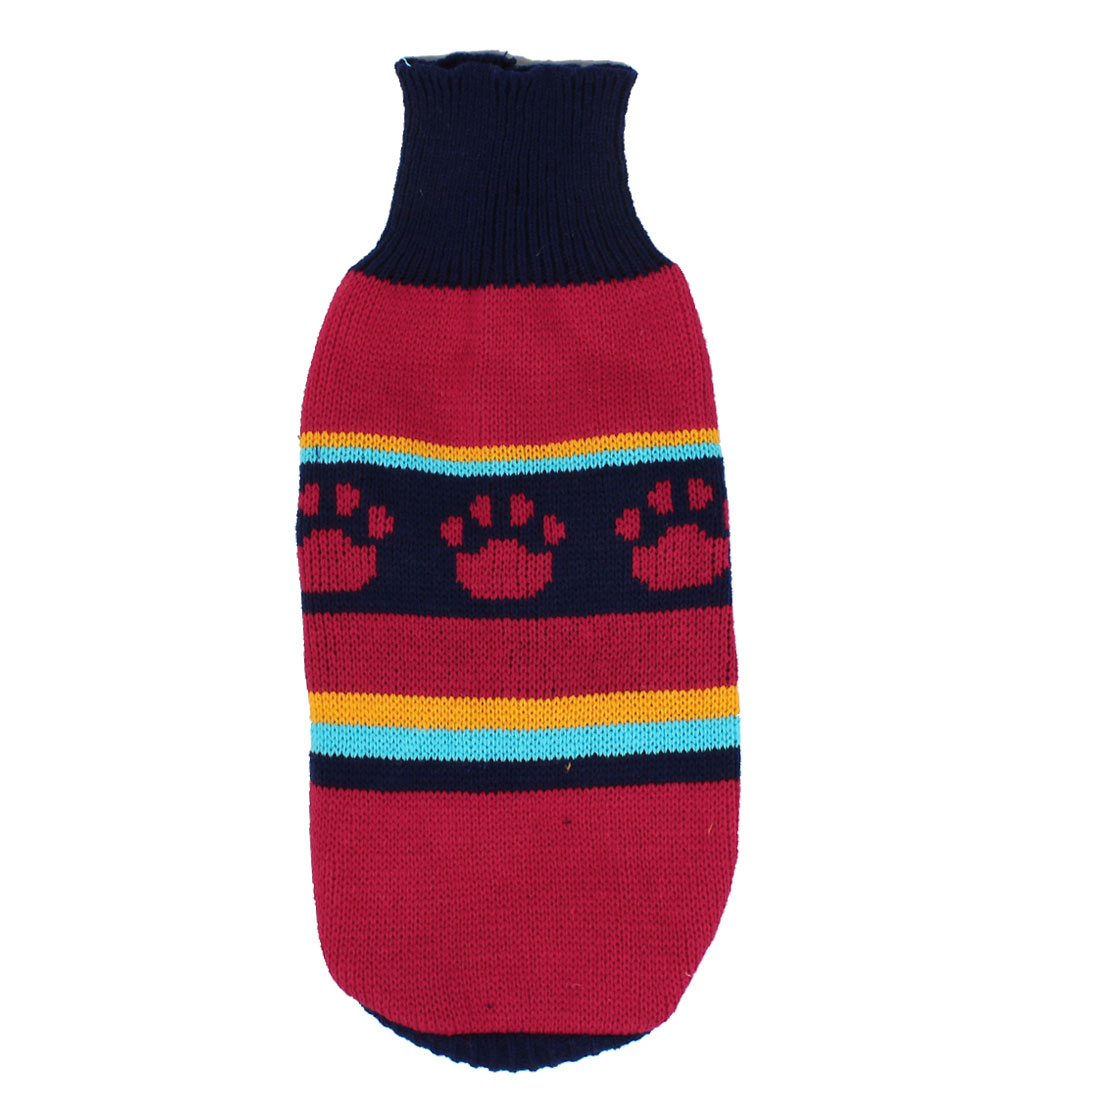 Pet Dog Puppy Claw Print Ribbed Cuff Knitwear Turtleneck Apparel Sweater Dark Blue Red Size M